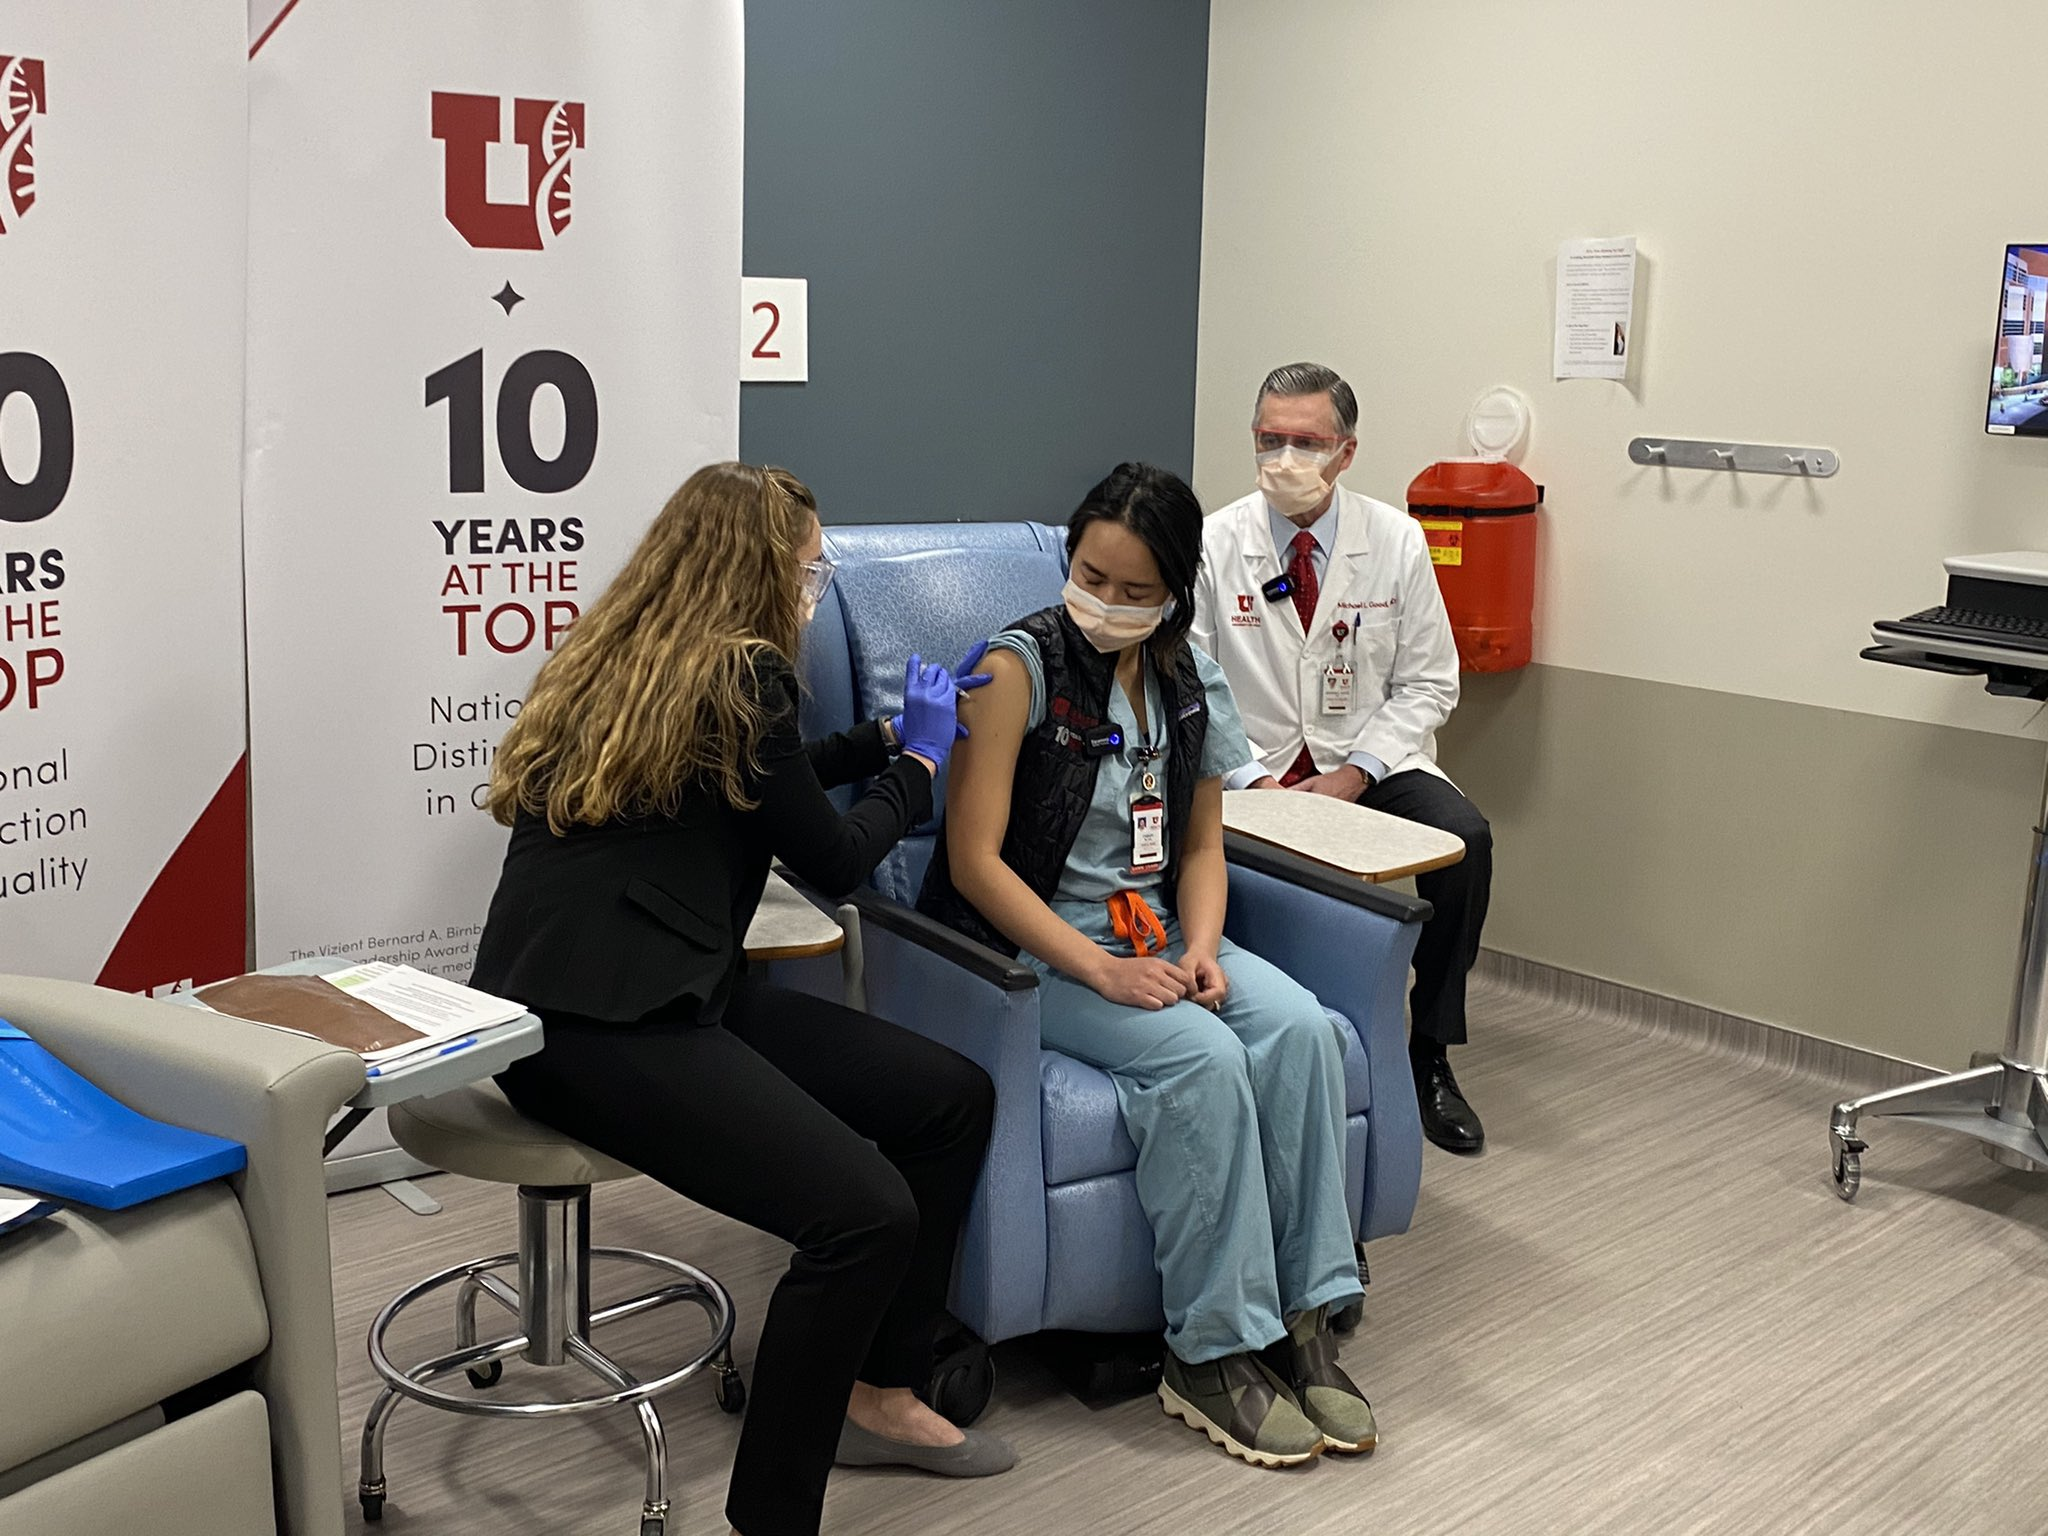 University of Utah nurse receiving a COVID vaccine.